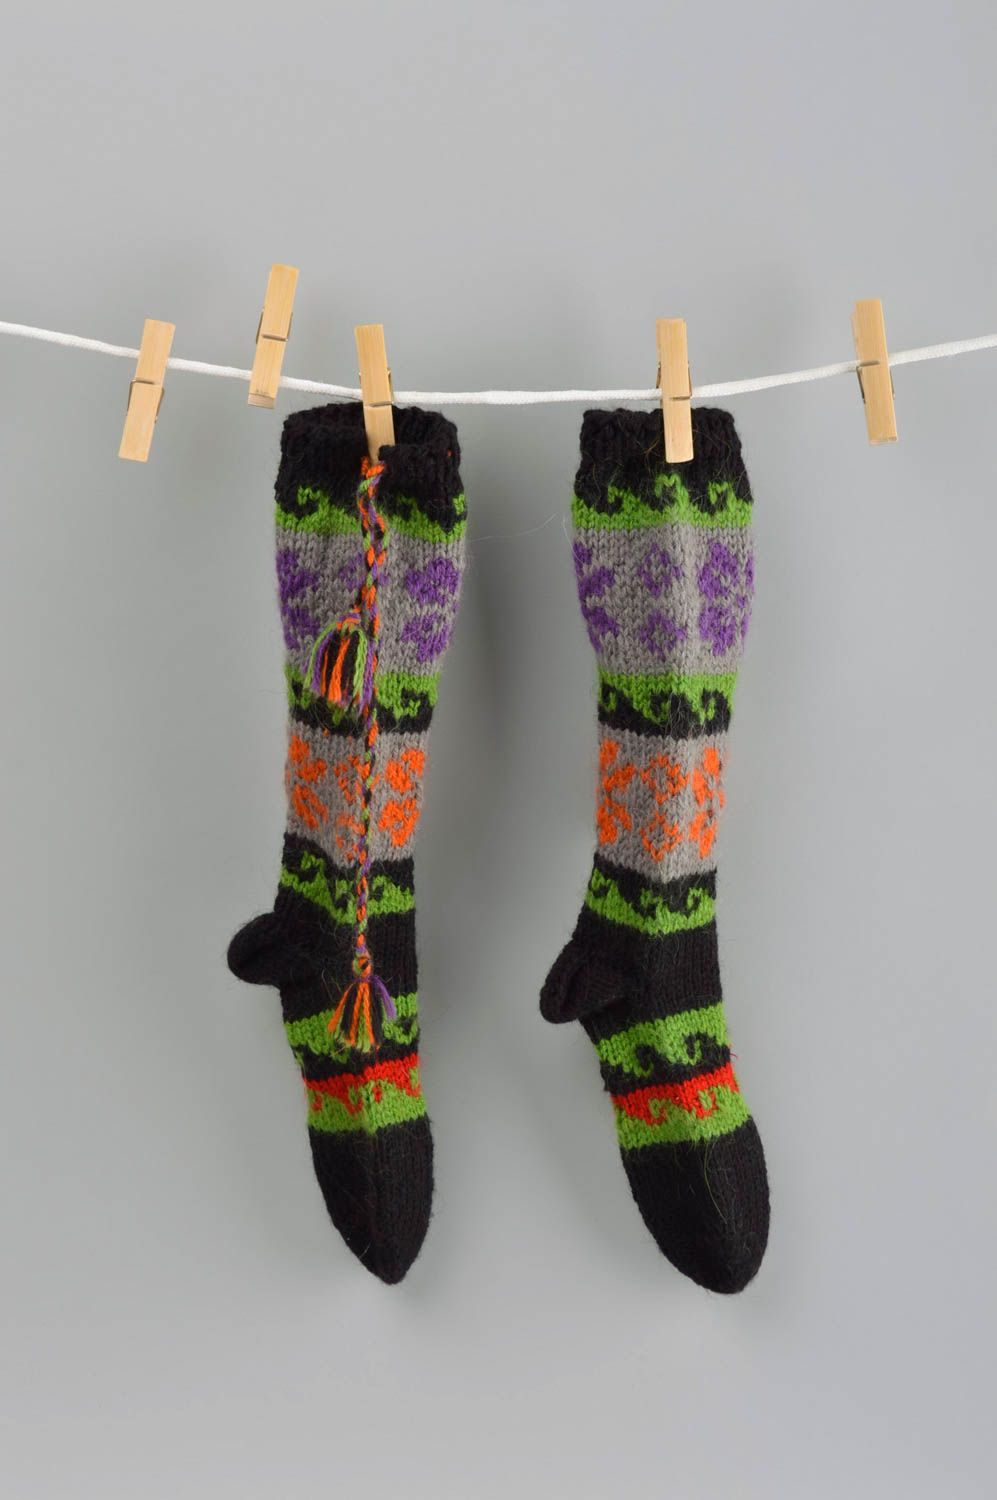 Notice: Undefined variable: cat in /home/newmadeheart/prod/cache/volt/%%home%%newmadeheart%%prod%%app%%views%%product%%index.volt.php on line 139  Unusual handmade knitted socks warm wool socks for kids handmade accessories - MADEheart.com